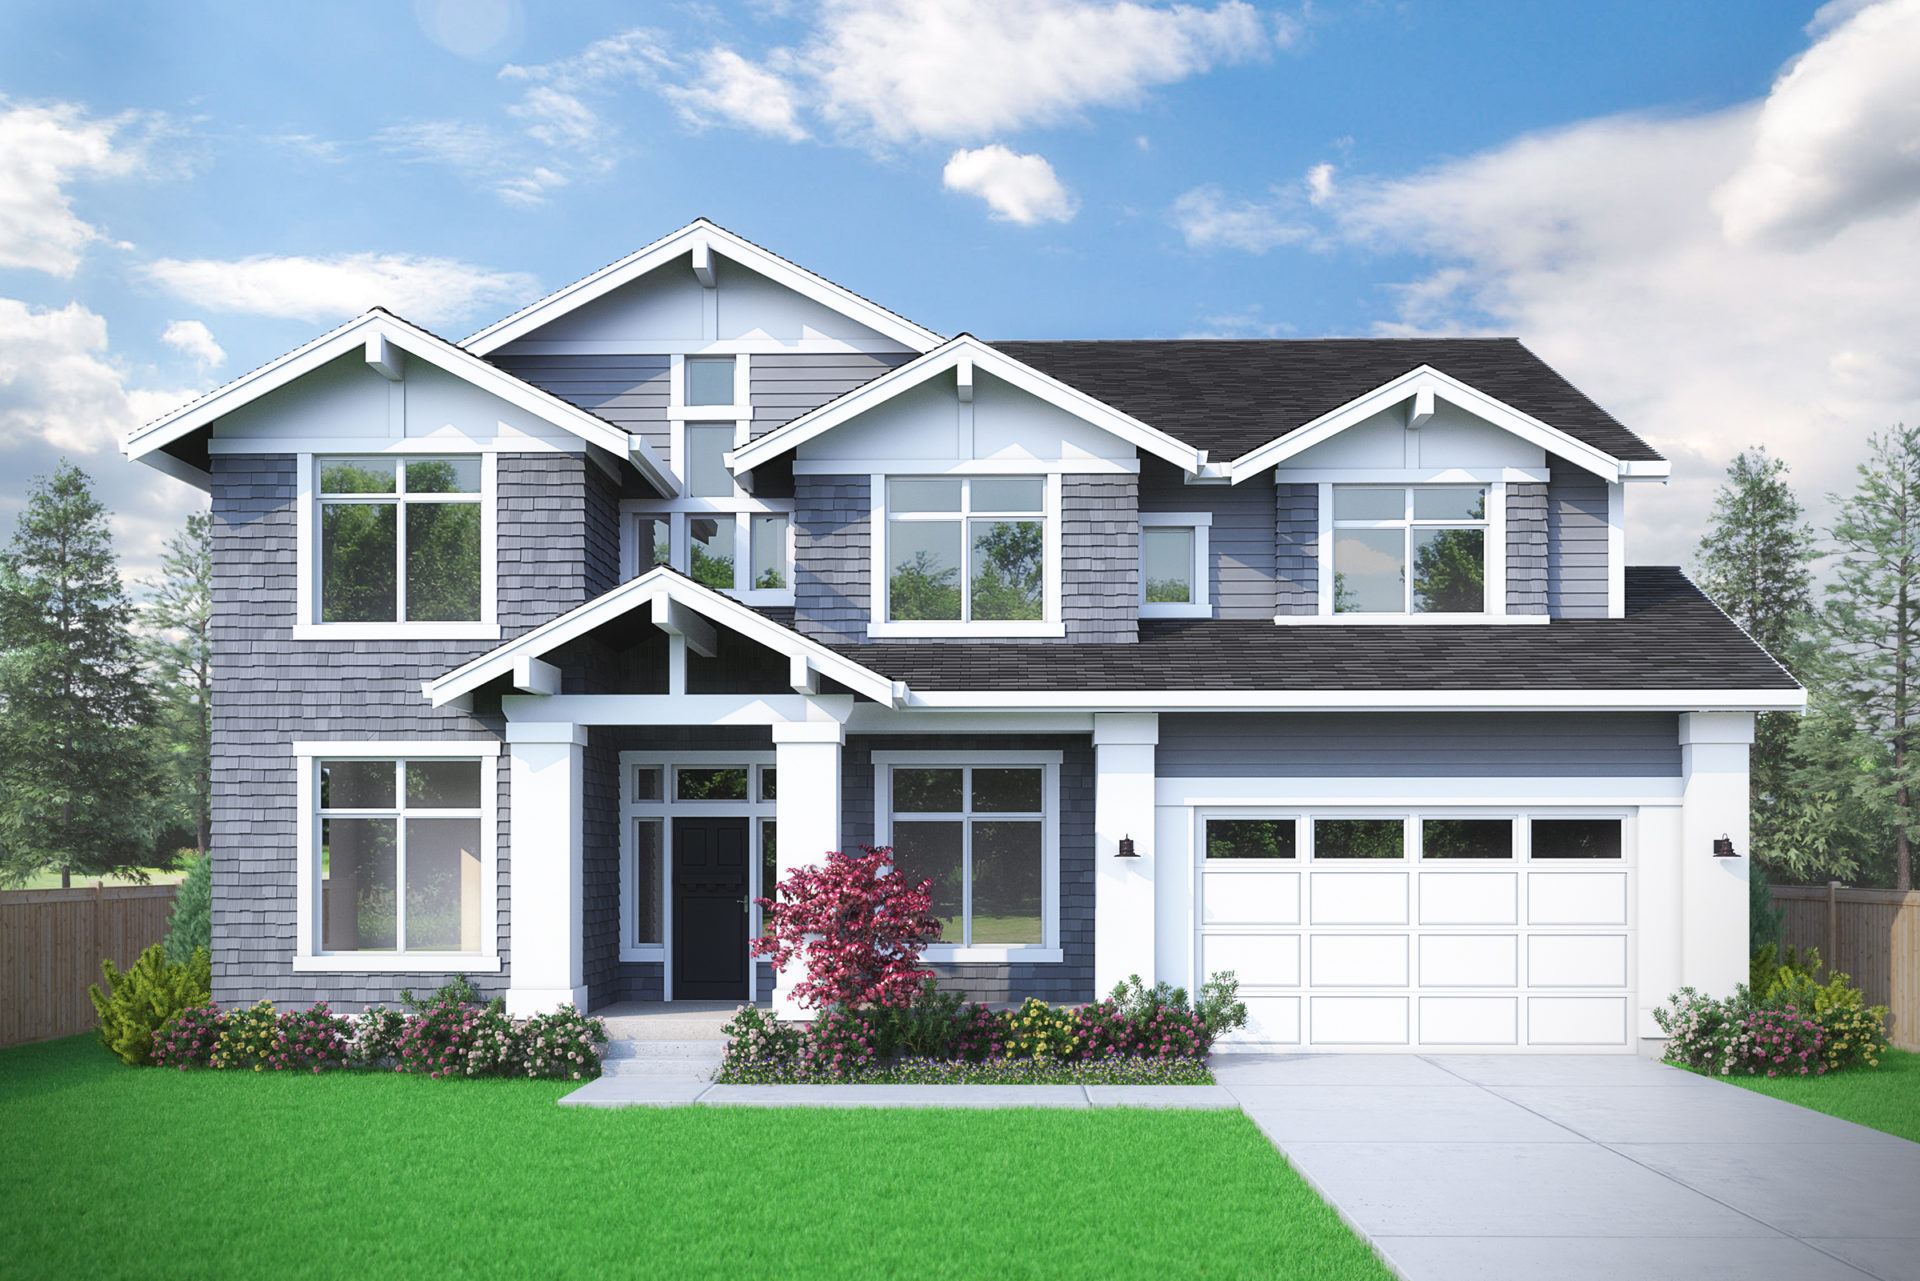 View our new luxury home construction on 14257 SE Eastgate Dr, in Bellevue, WA from MN Custom Homes